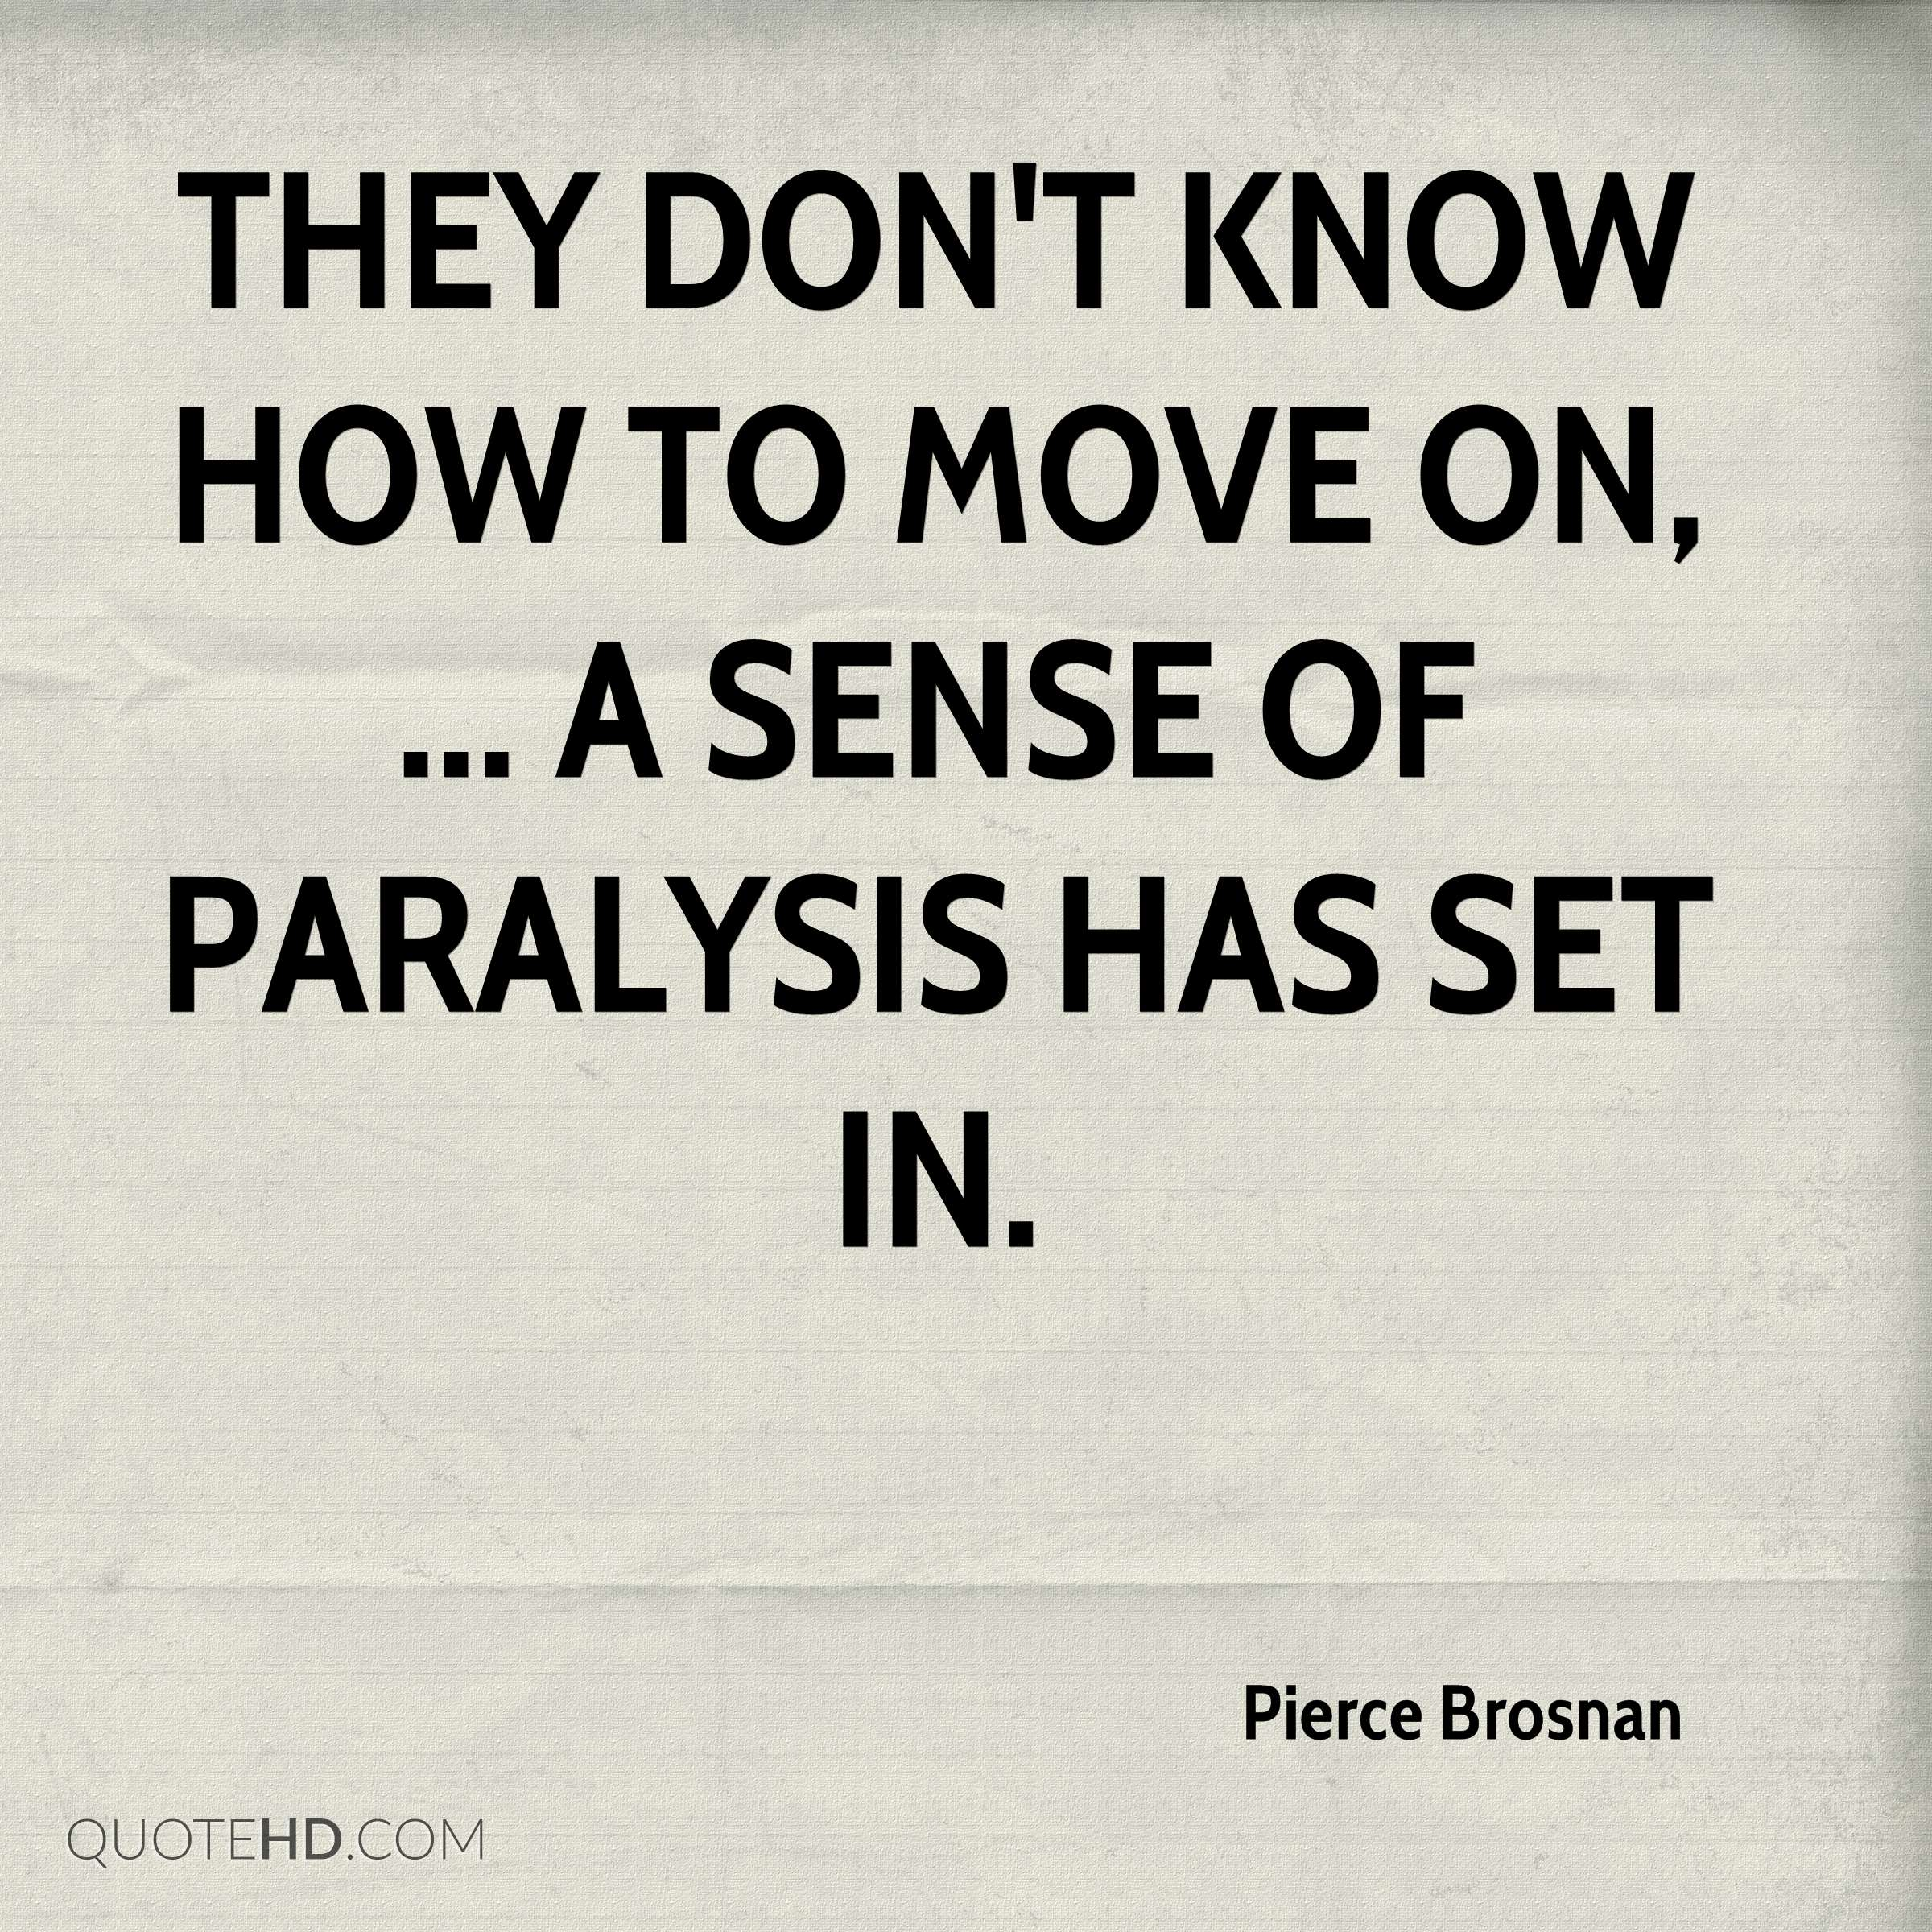 They don't know how to move on, ... A sense of paralysis has set in.